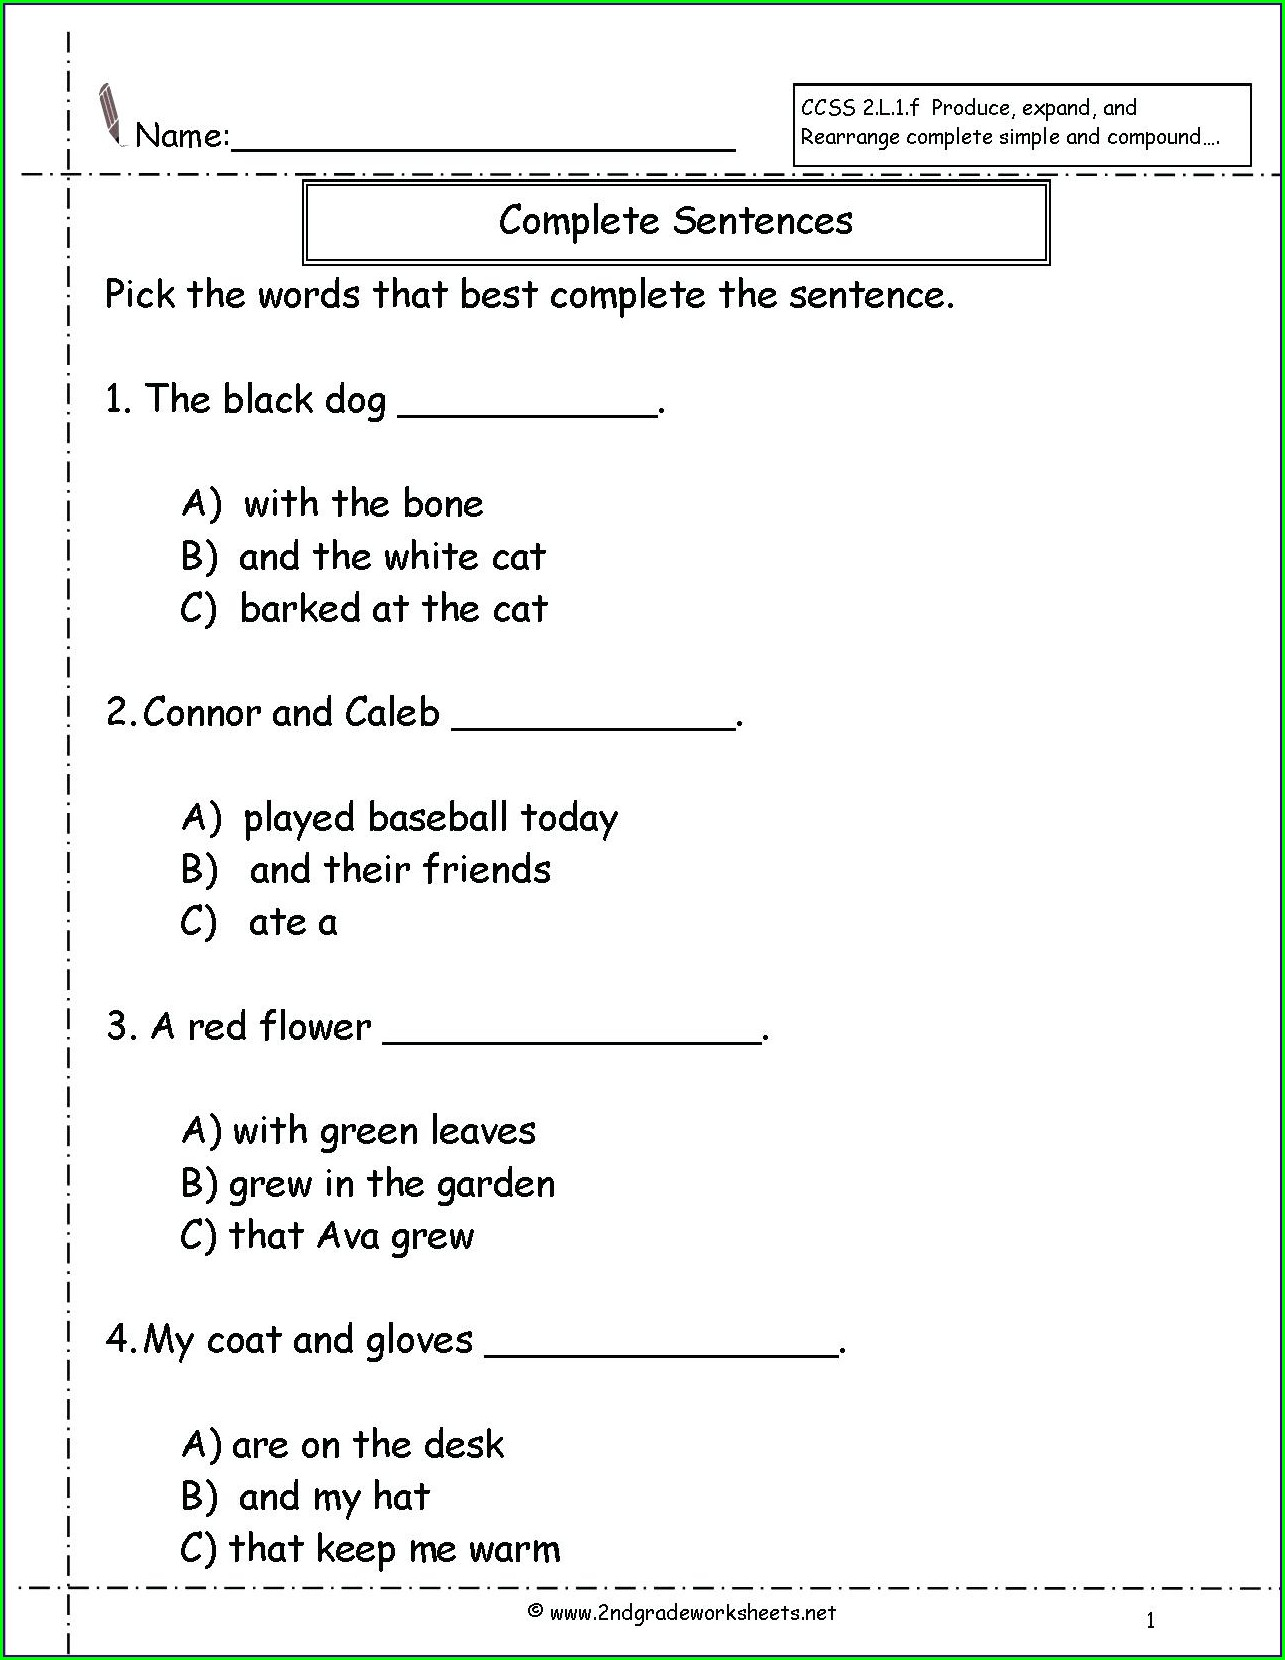 Complete Sentences Worksheet Grade 4